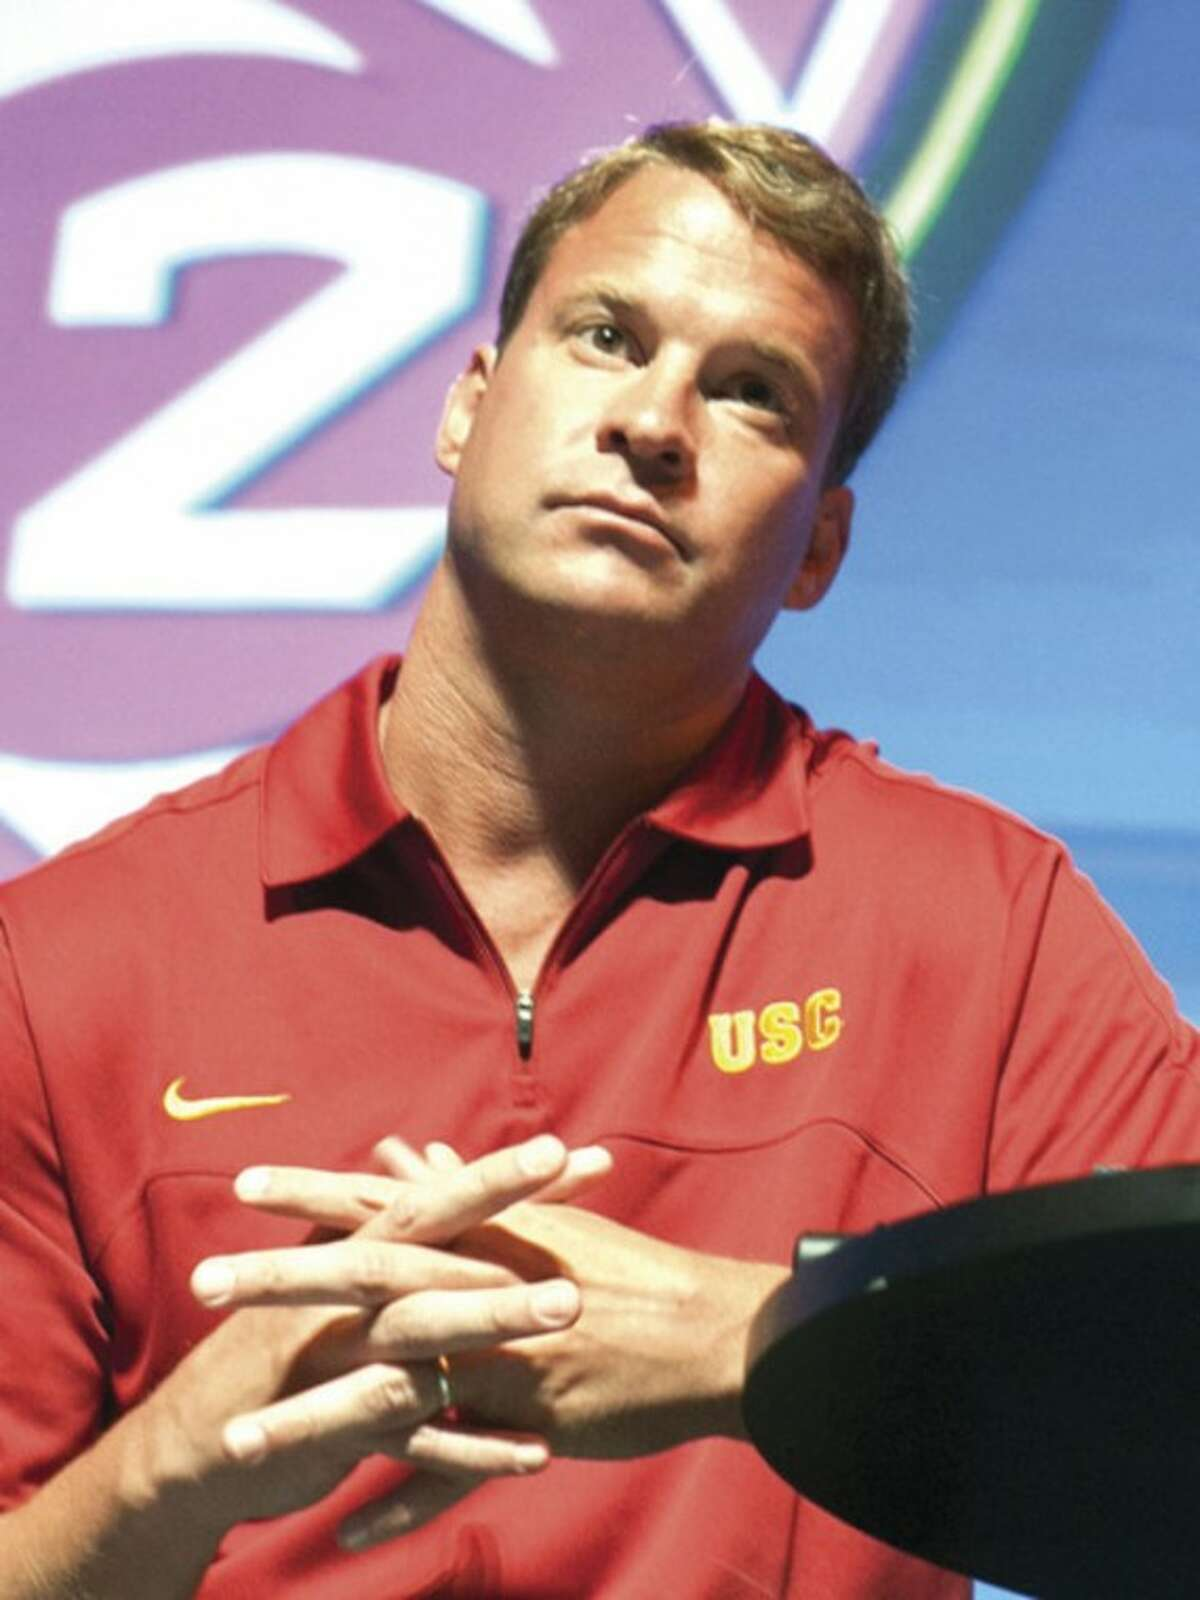 Southern California coach Lane Kiffin takes questions at the Pac-12 NCAA college football media day in Los Angeles, Tuesday, July 24, 2012. (AP Photo/Damian Dovarganes)